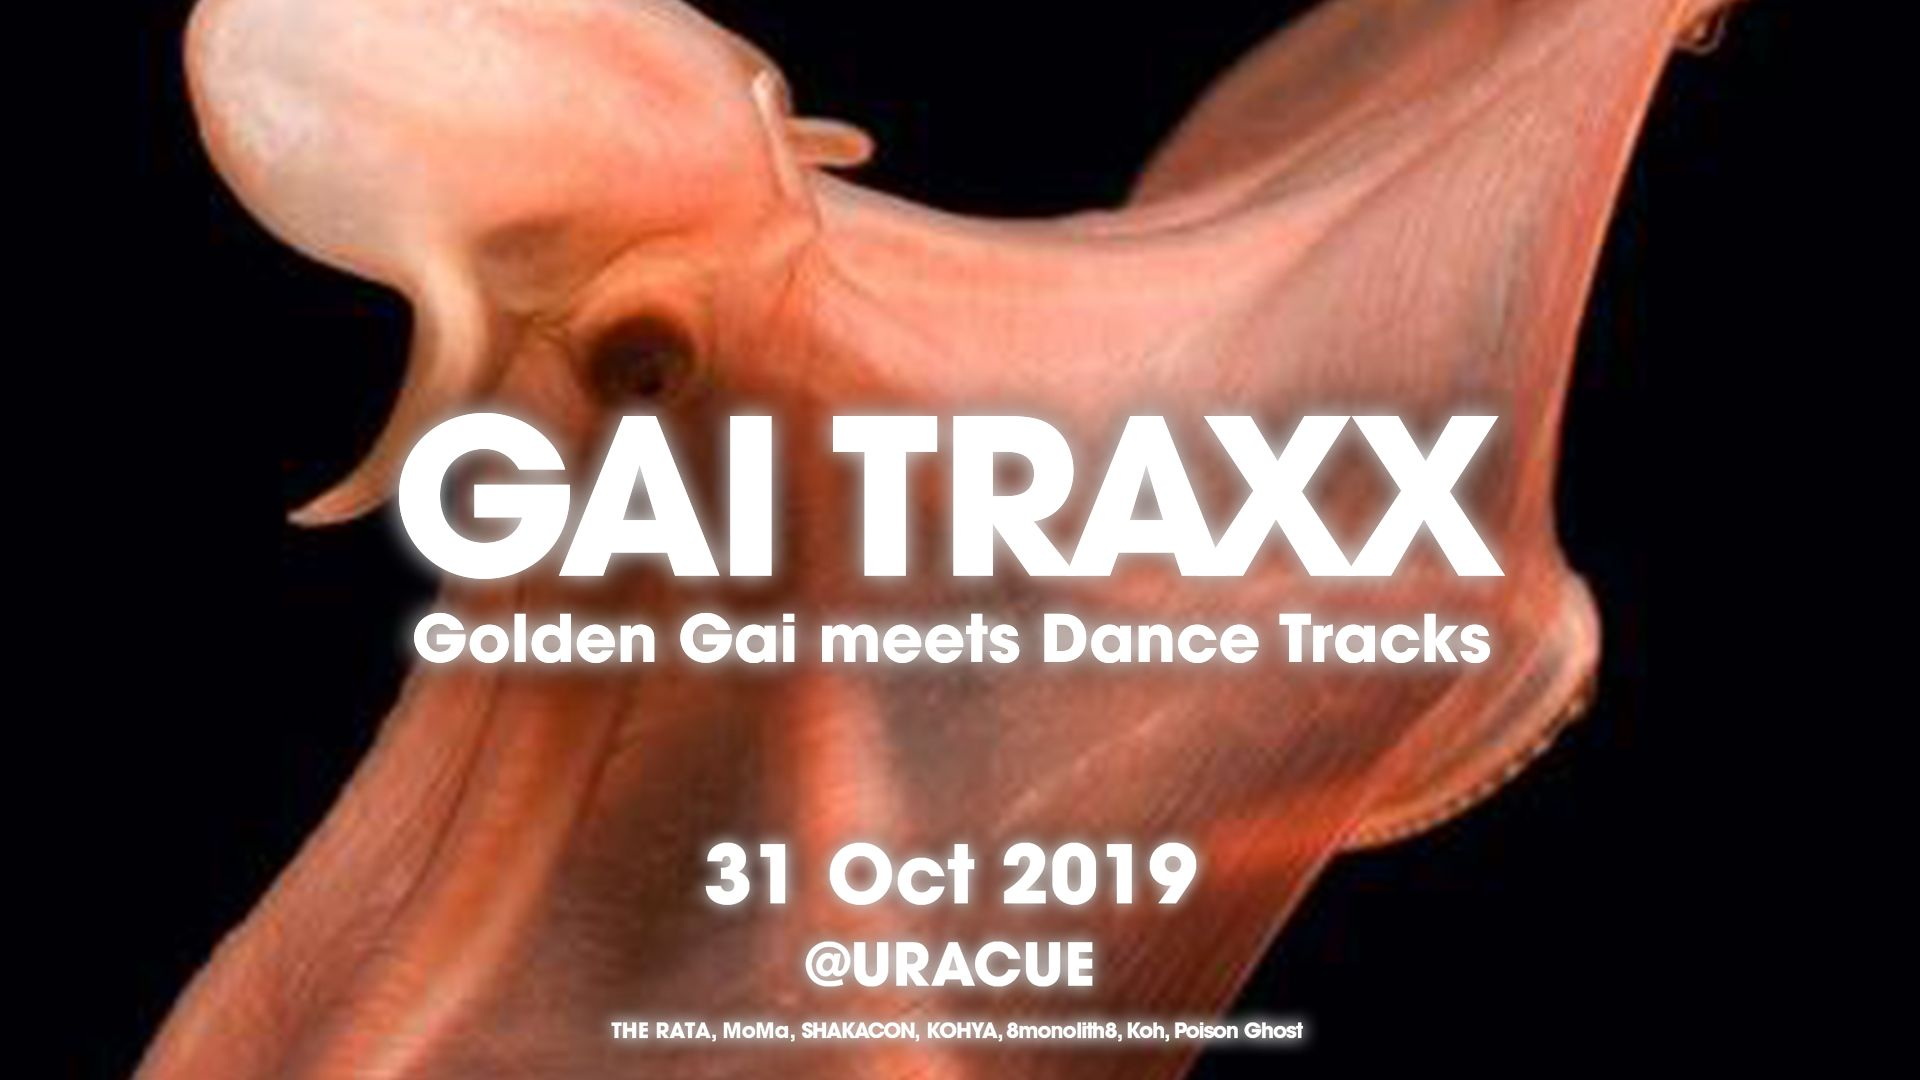 GAI TRAXX - Golden-Gai meets Dance Tracks【Halloween Night Party】